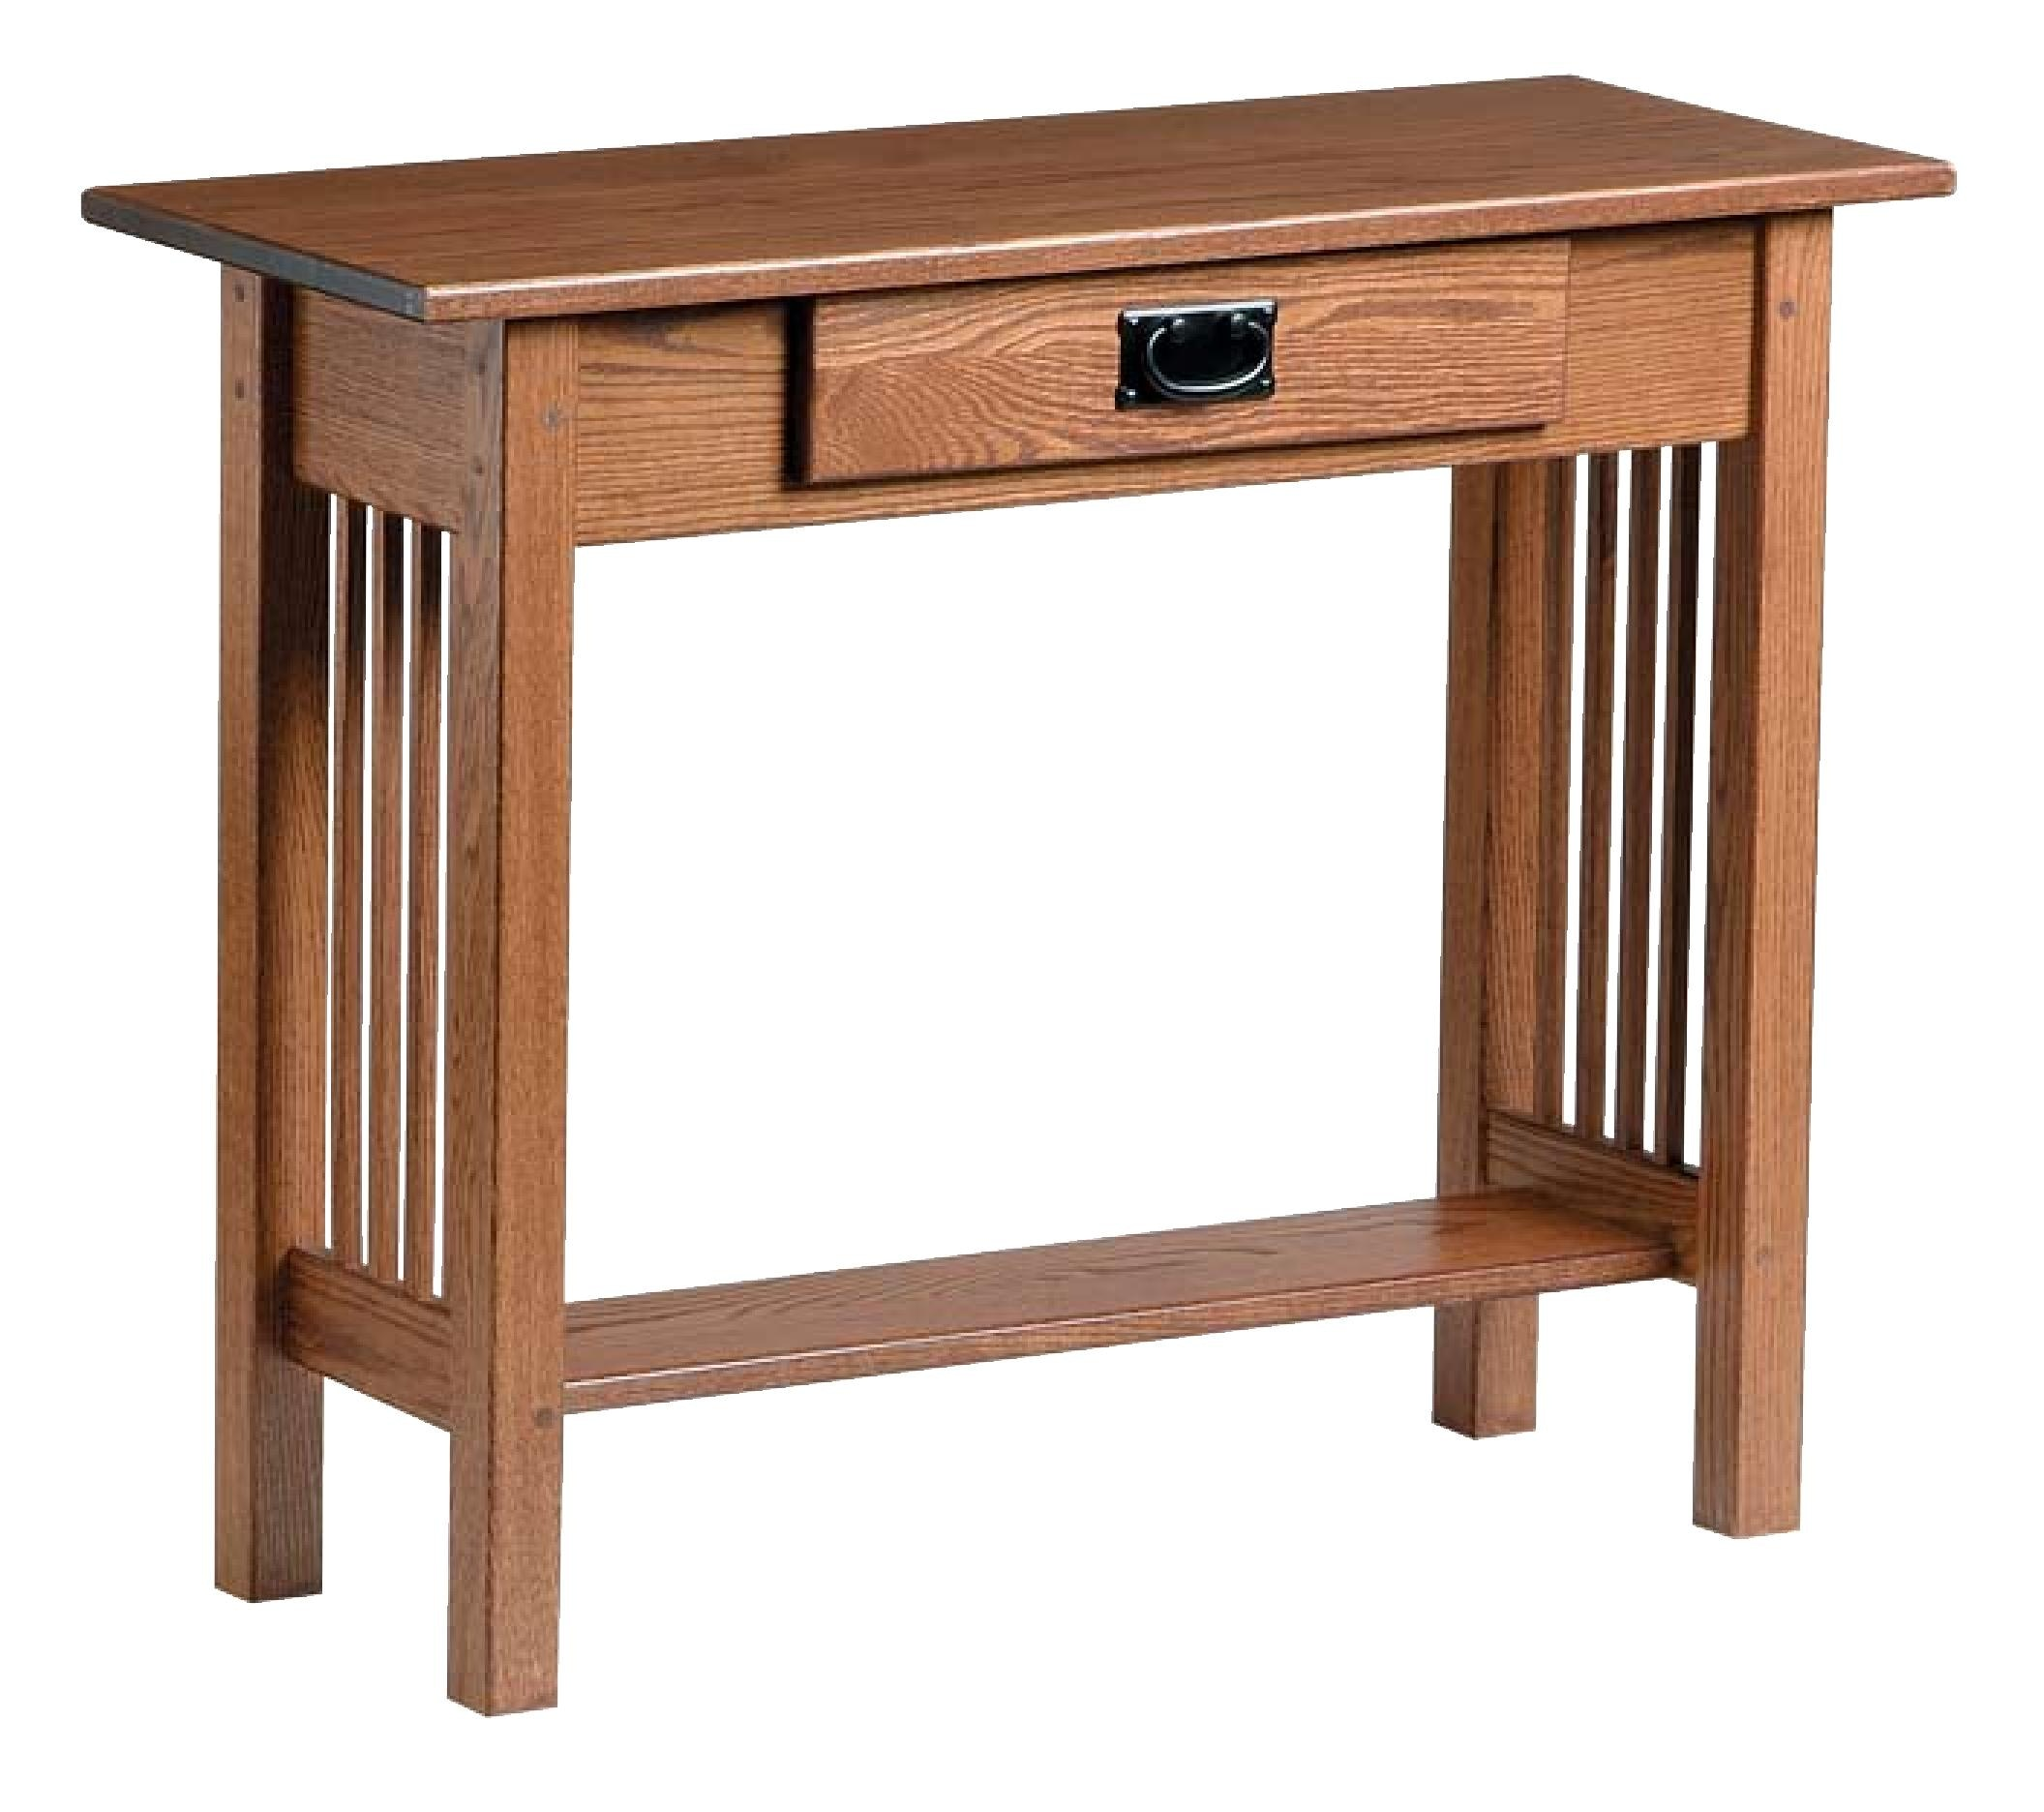 Genial Country Value Woodworks Mission Style Console Table W/ Drawer 044